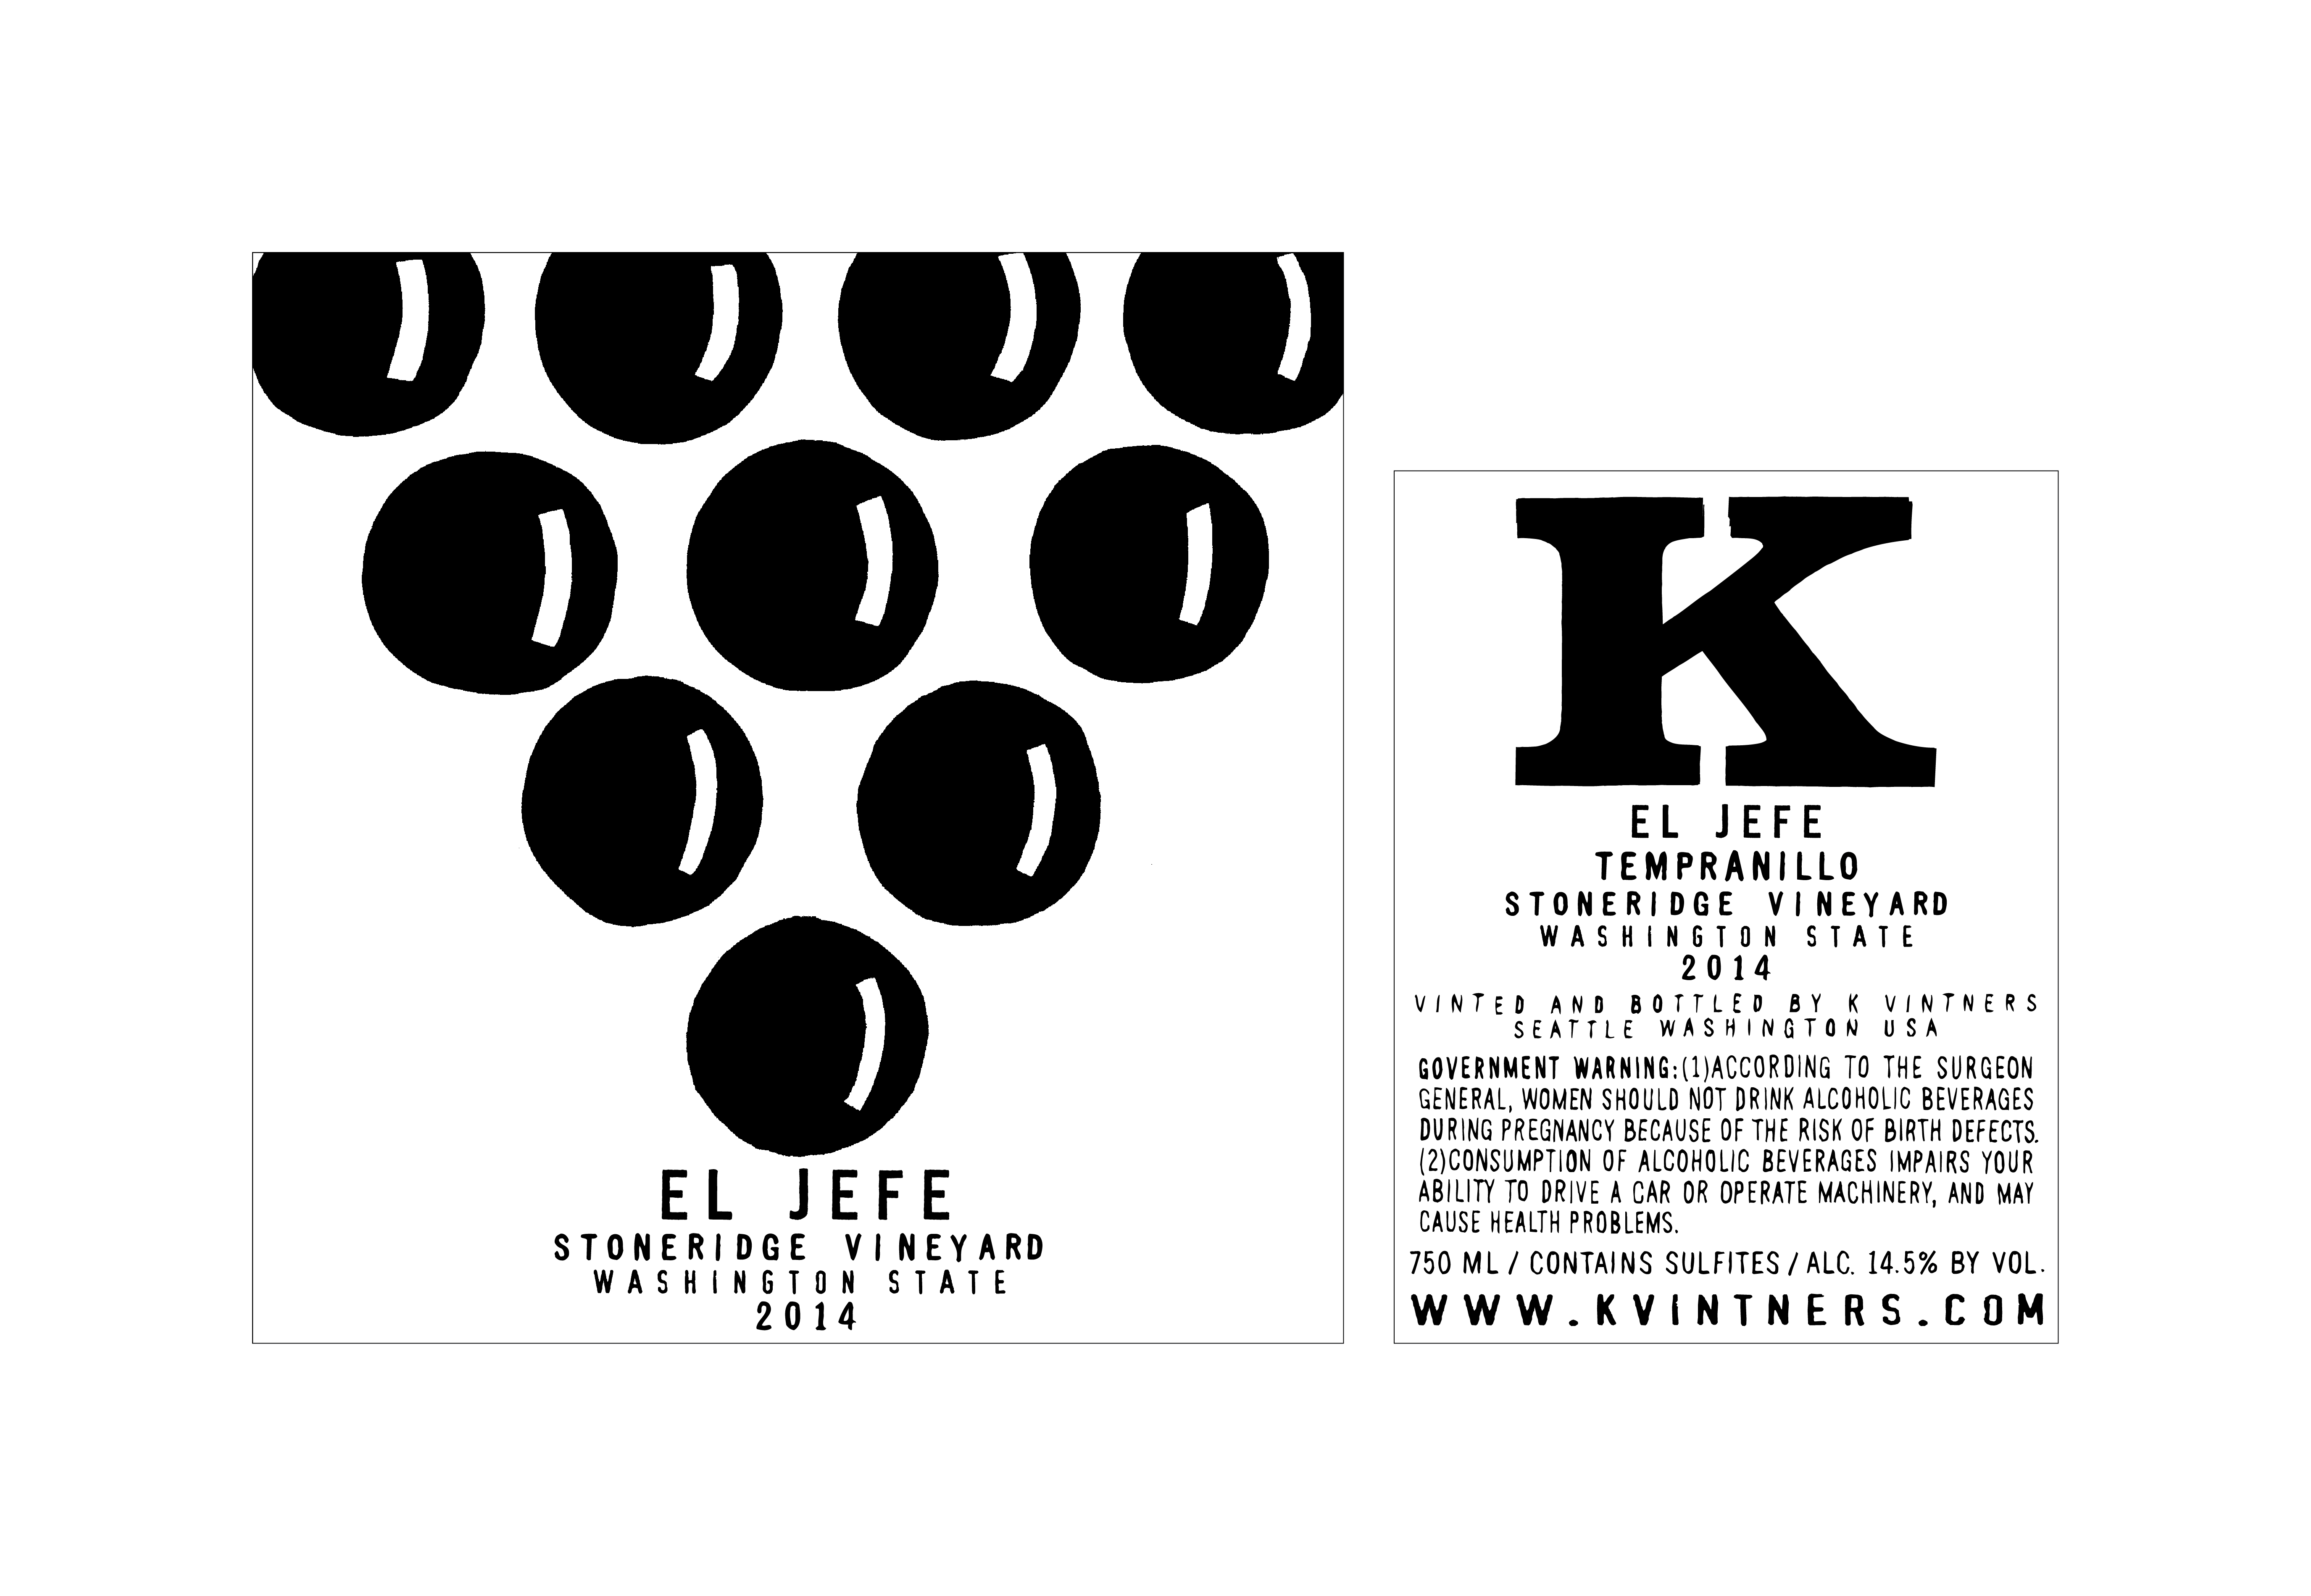 2014 K Vintners Tempranillo El Jefe Stoneridge Vineyard